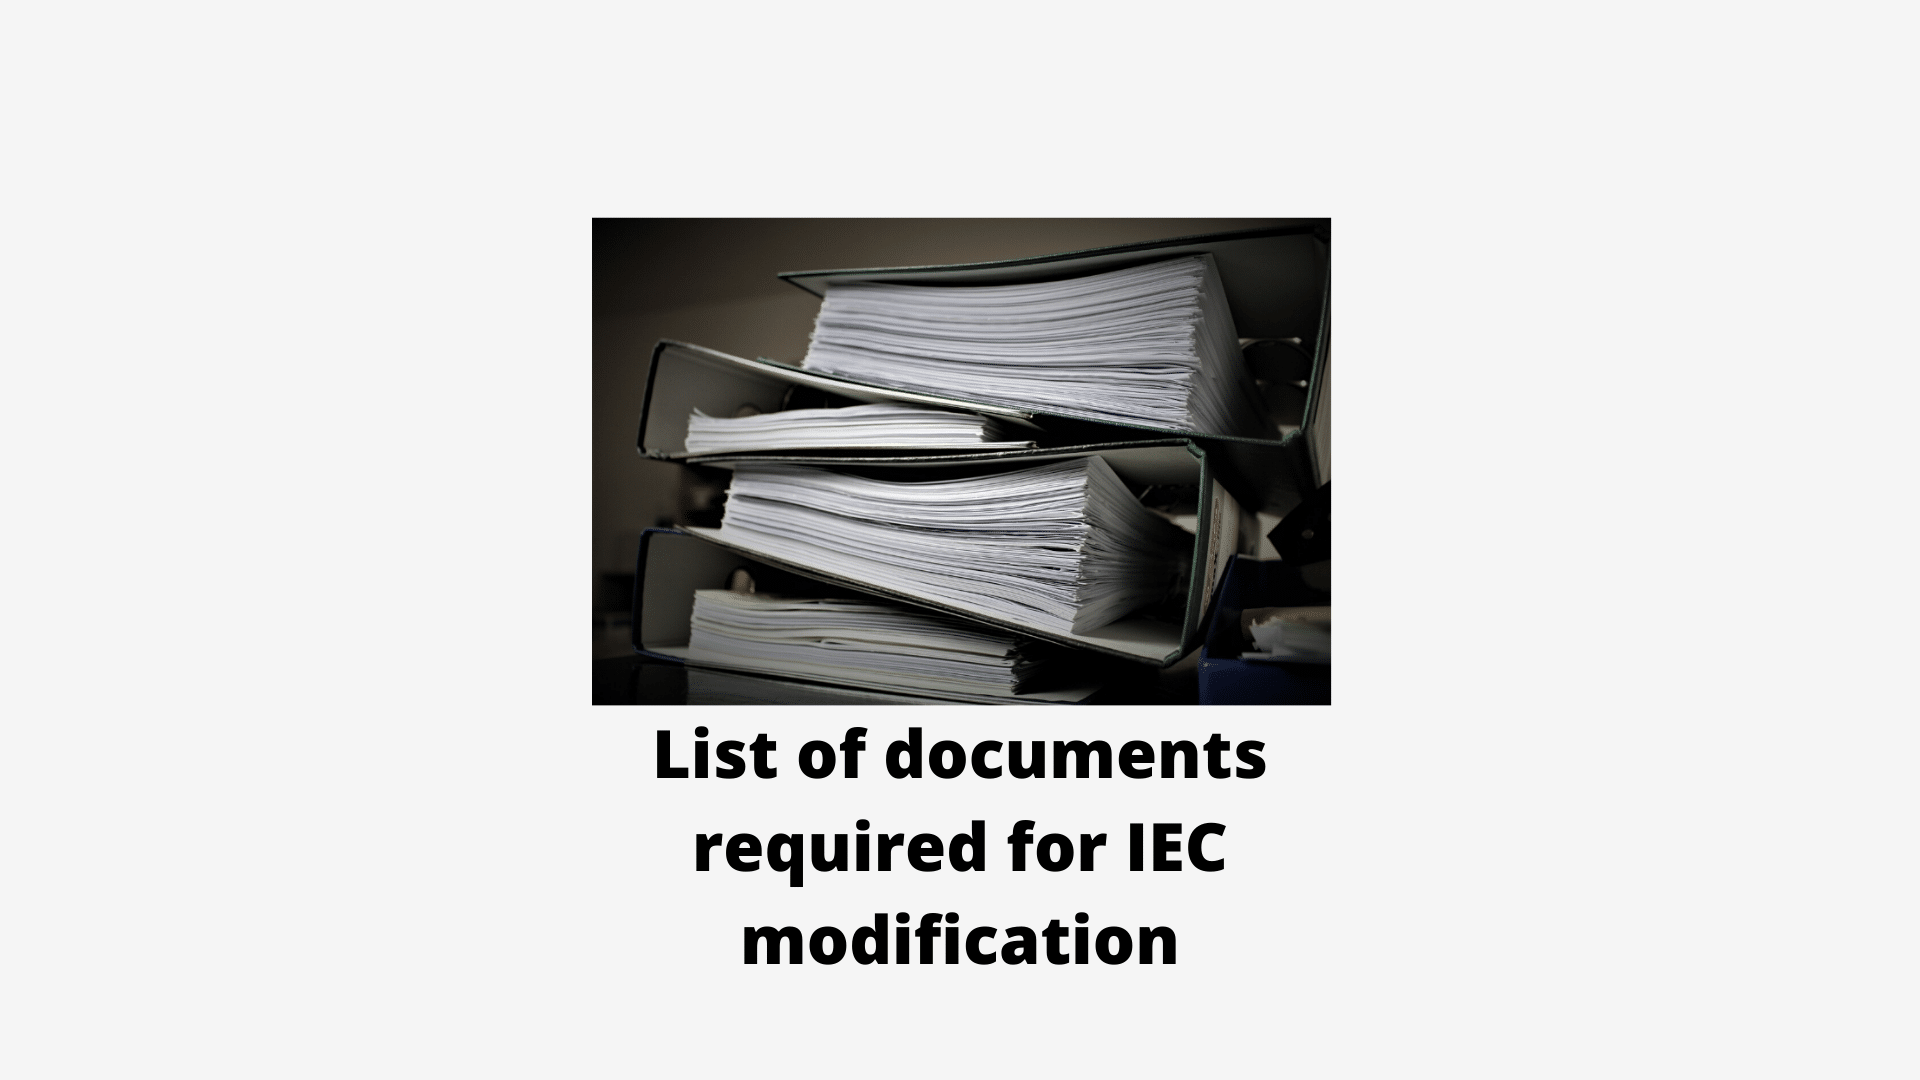 List of documents required for IEC modifications